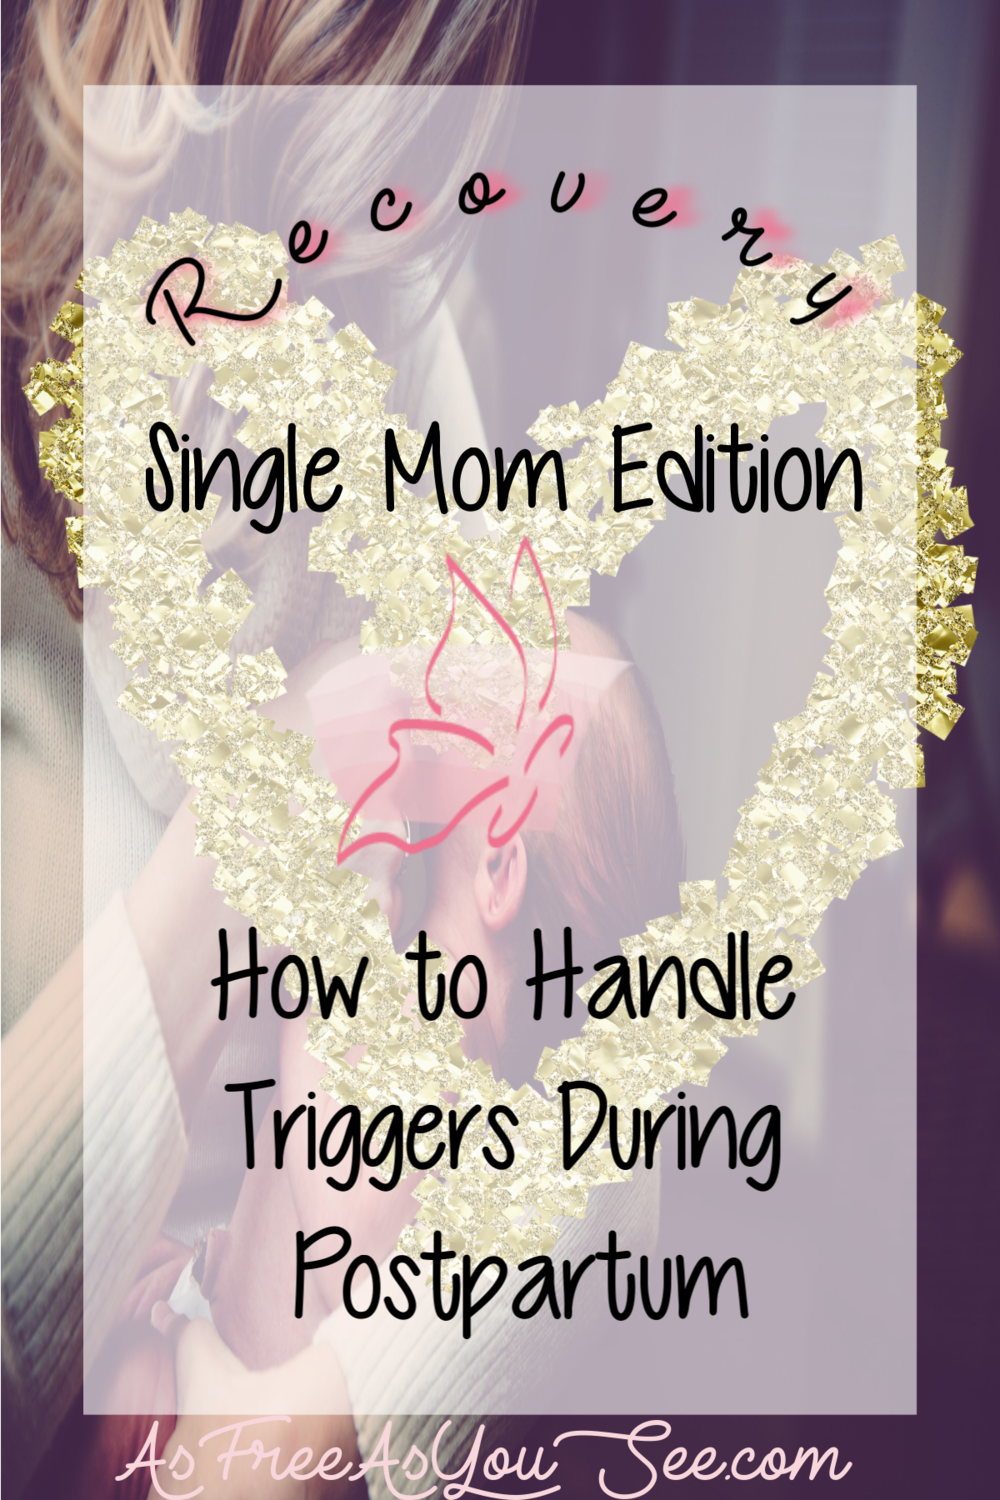 In this recovery blog we're going behind the scenes of how Angela handles postpartum triggers related to childhood sexual abuse.  She shares 3 personal stories of her first month of postpartum.  Plus how to cope with the triggers.  Read the blog to learn how you, too, can cope with triggers, if you've suffered from sexual trauma as a child or an adult.